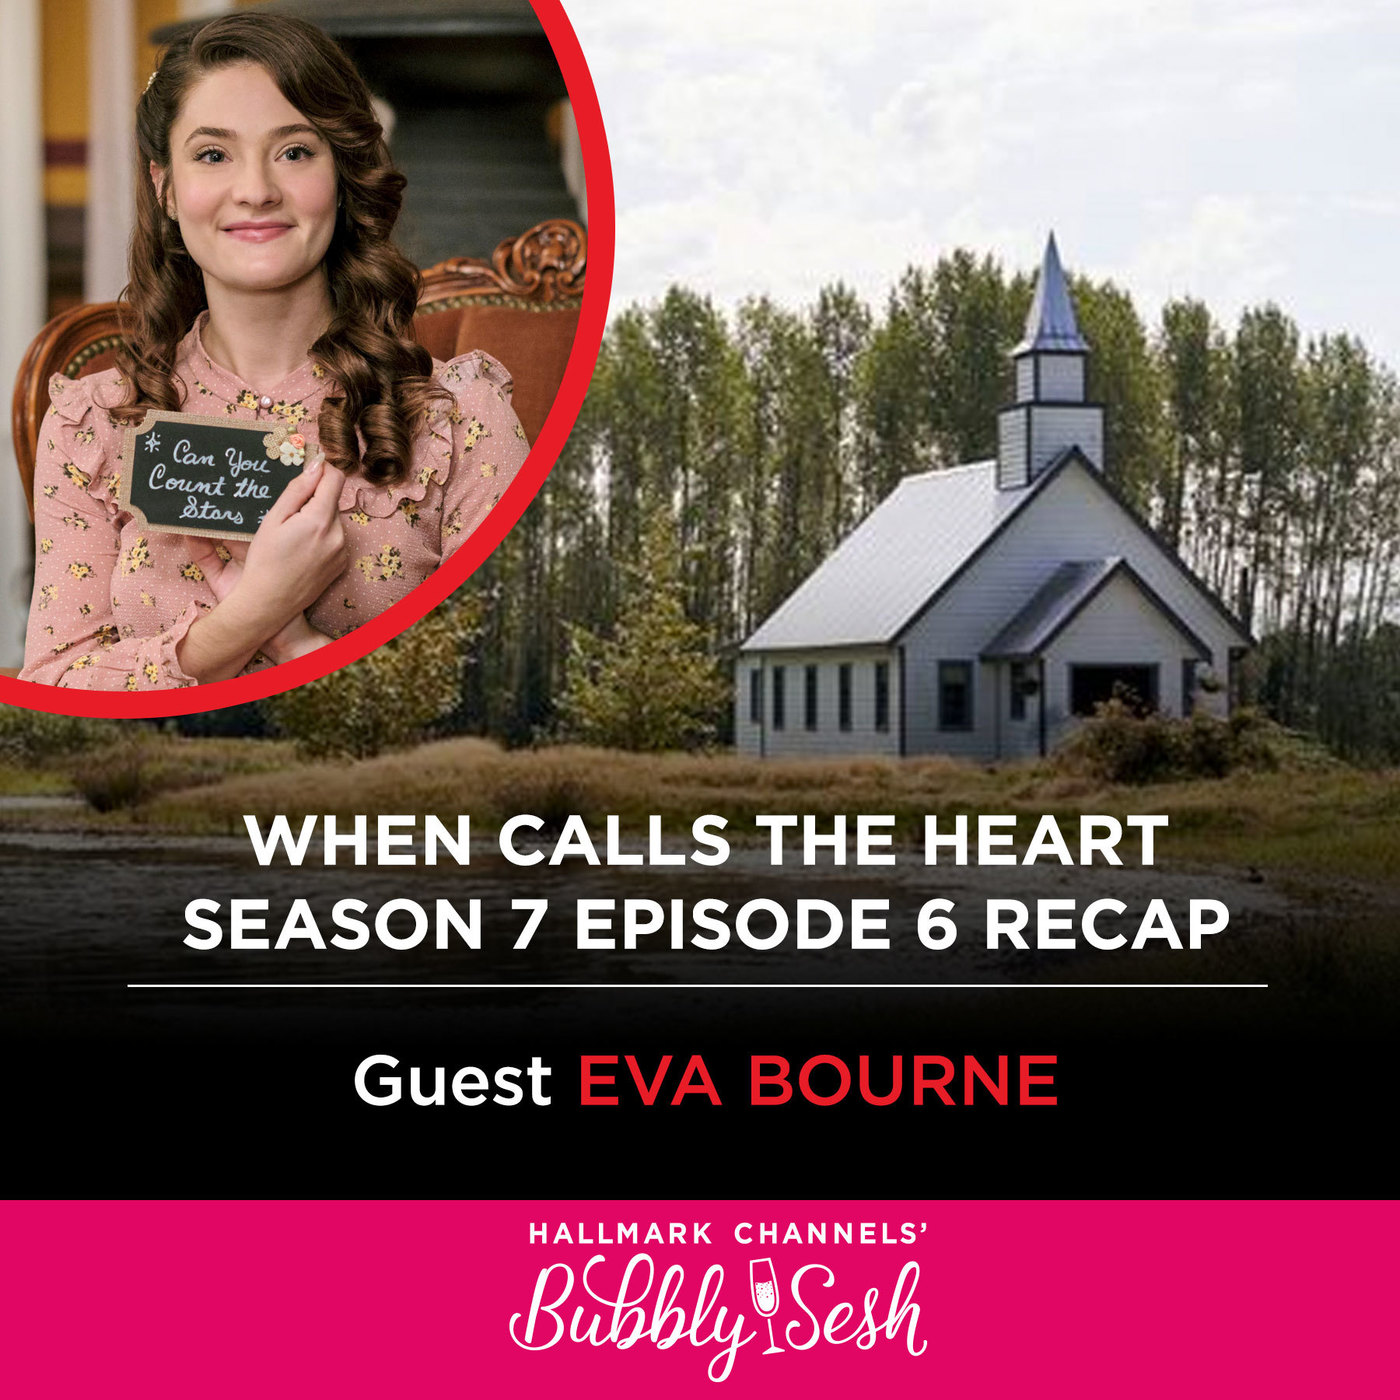 When Calls The Heart Season 7, Episode 6 Recap with Guest Eva Bourne